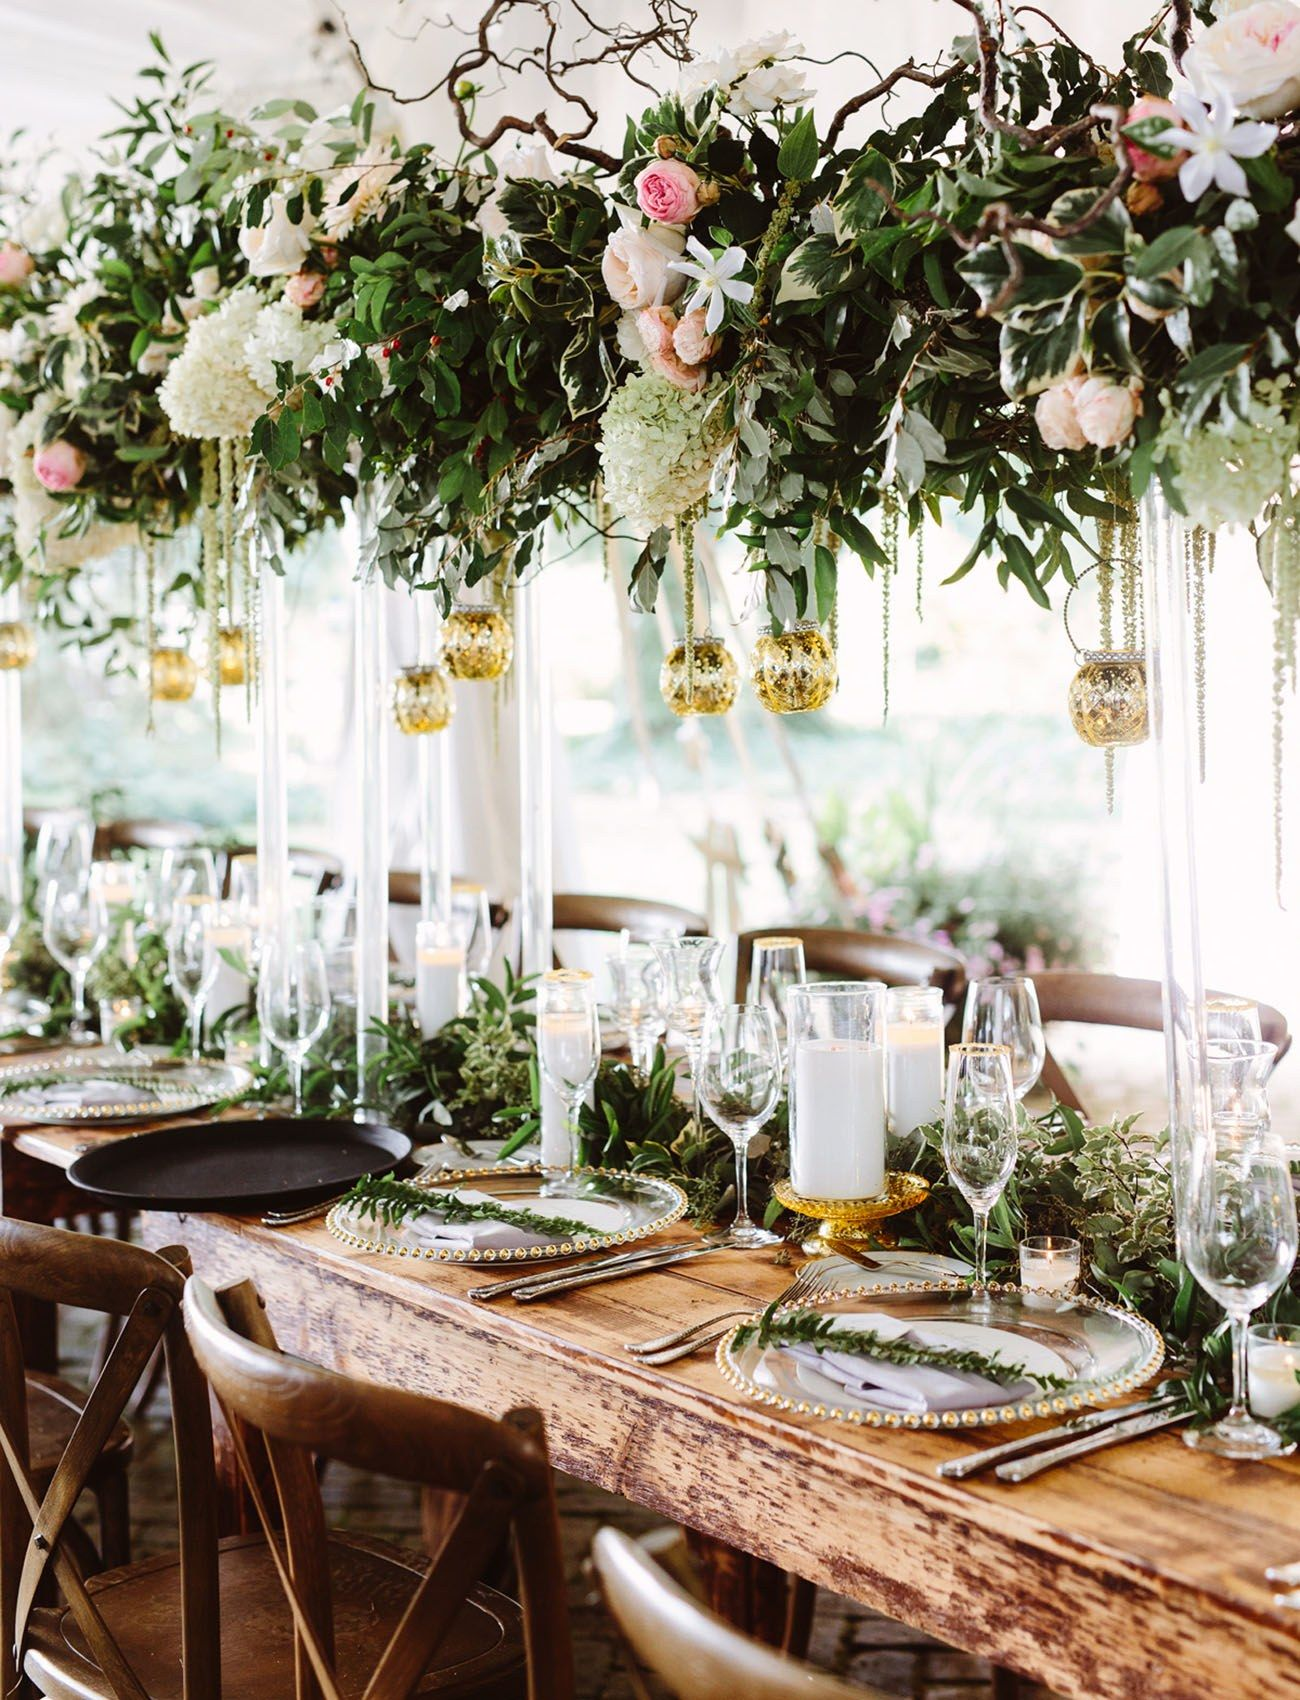 Wedding Reception Tablescapes That Are Giving Us Major Spring Fever